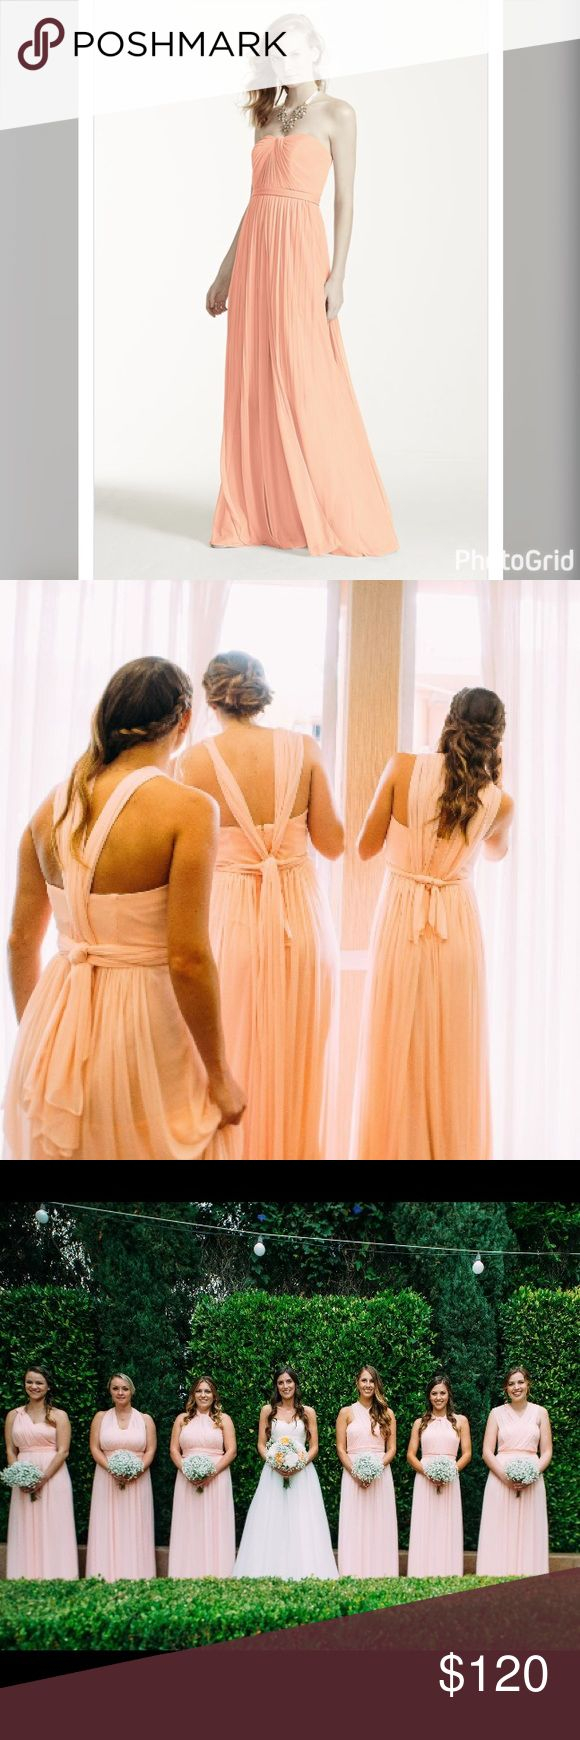 """Bellini Versa Dress from Davids Bridal Worn once! For a wedding. Can be worn like 15 ways.. every bridesmaid in the pictures is wearing the same dress. Color is called Bellini. Hemmed to 6'0"""" height so plenty of room to be hemmed shorter if need be. David's Bridal Dresses Maxi"""